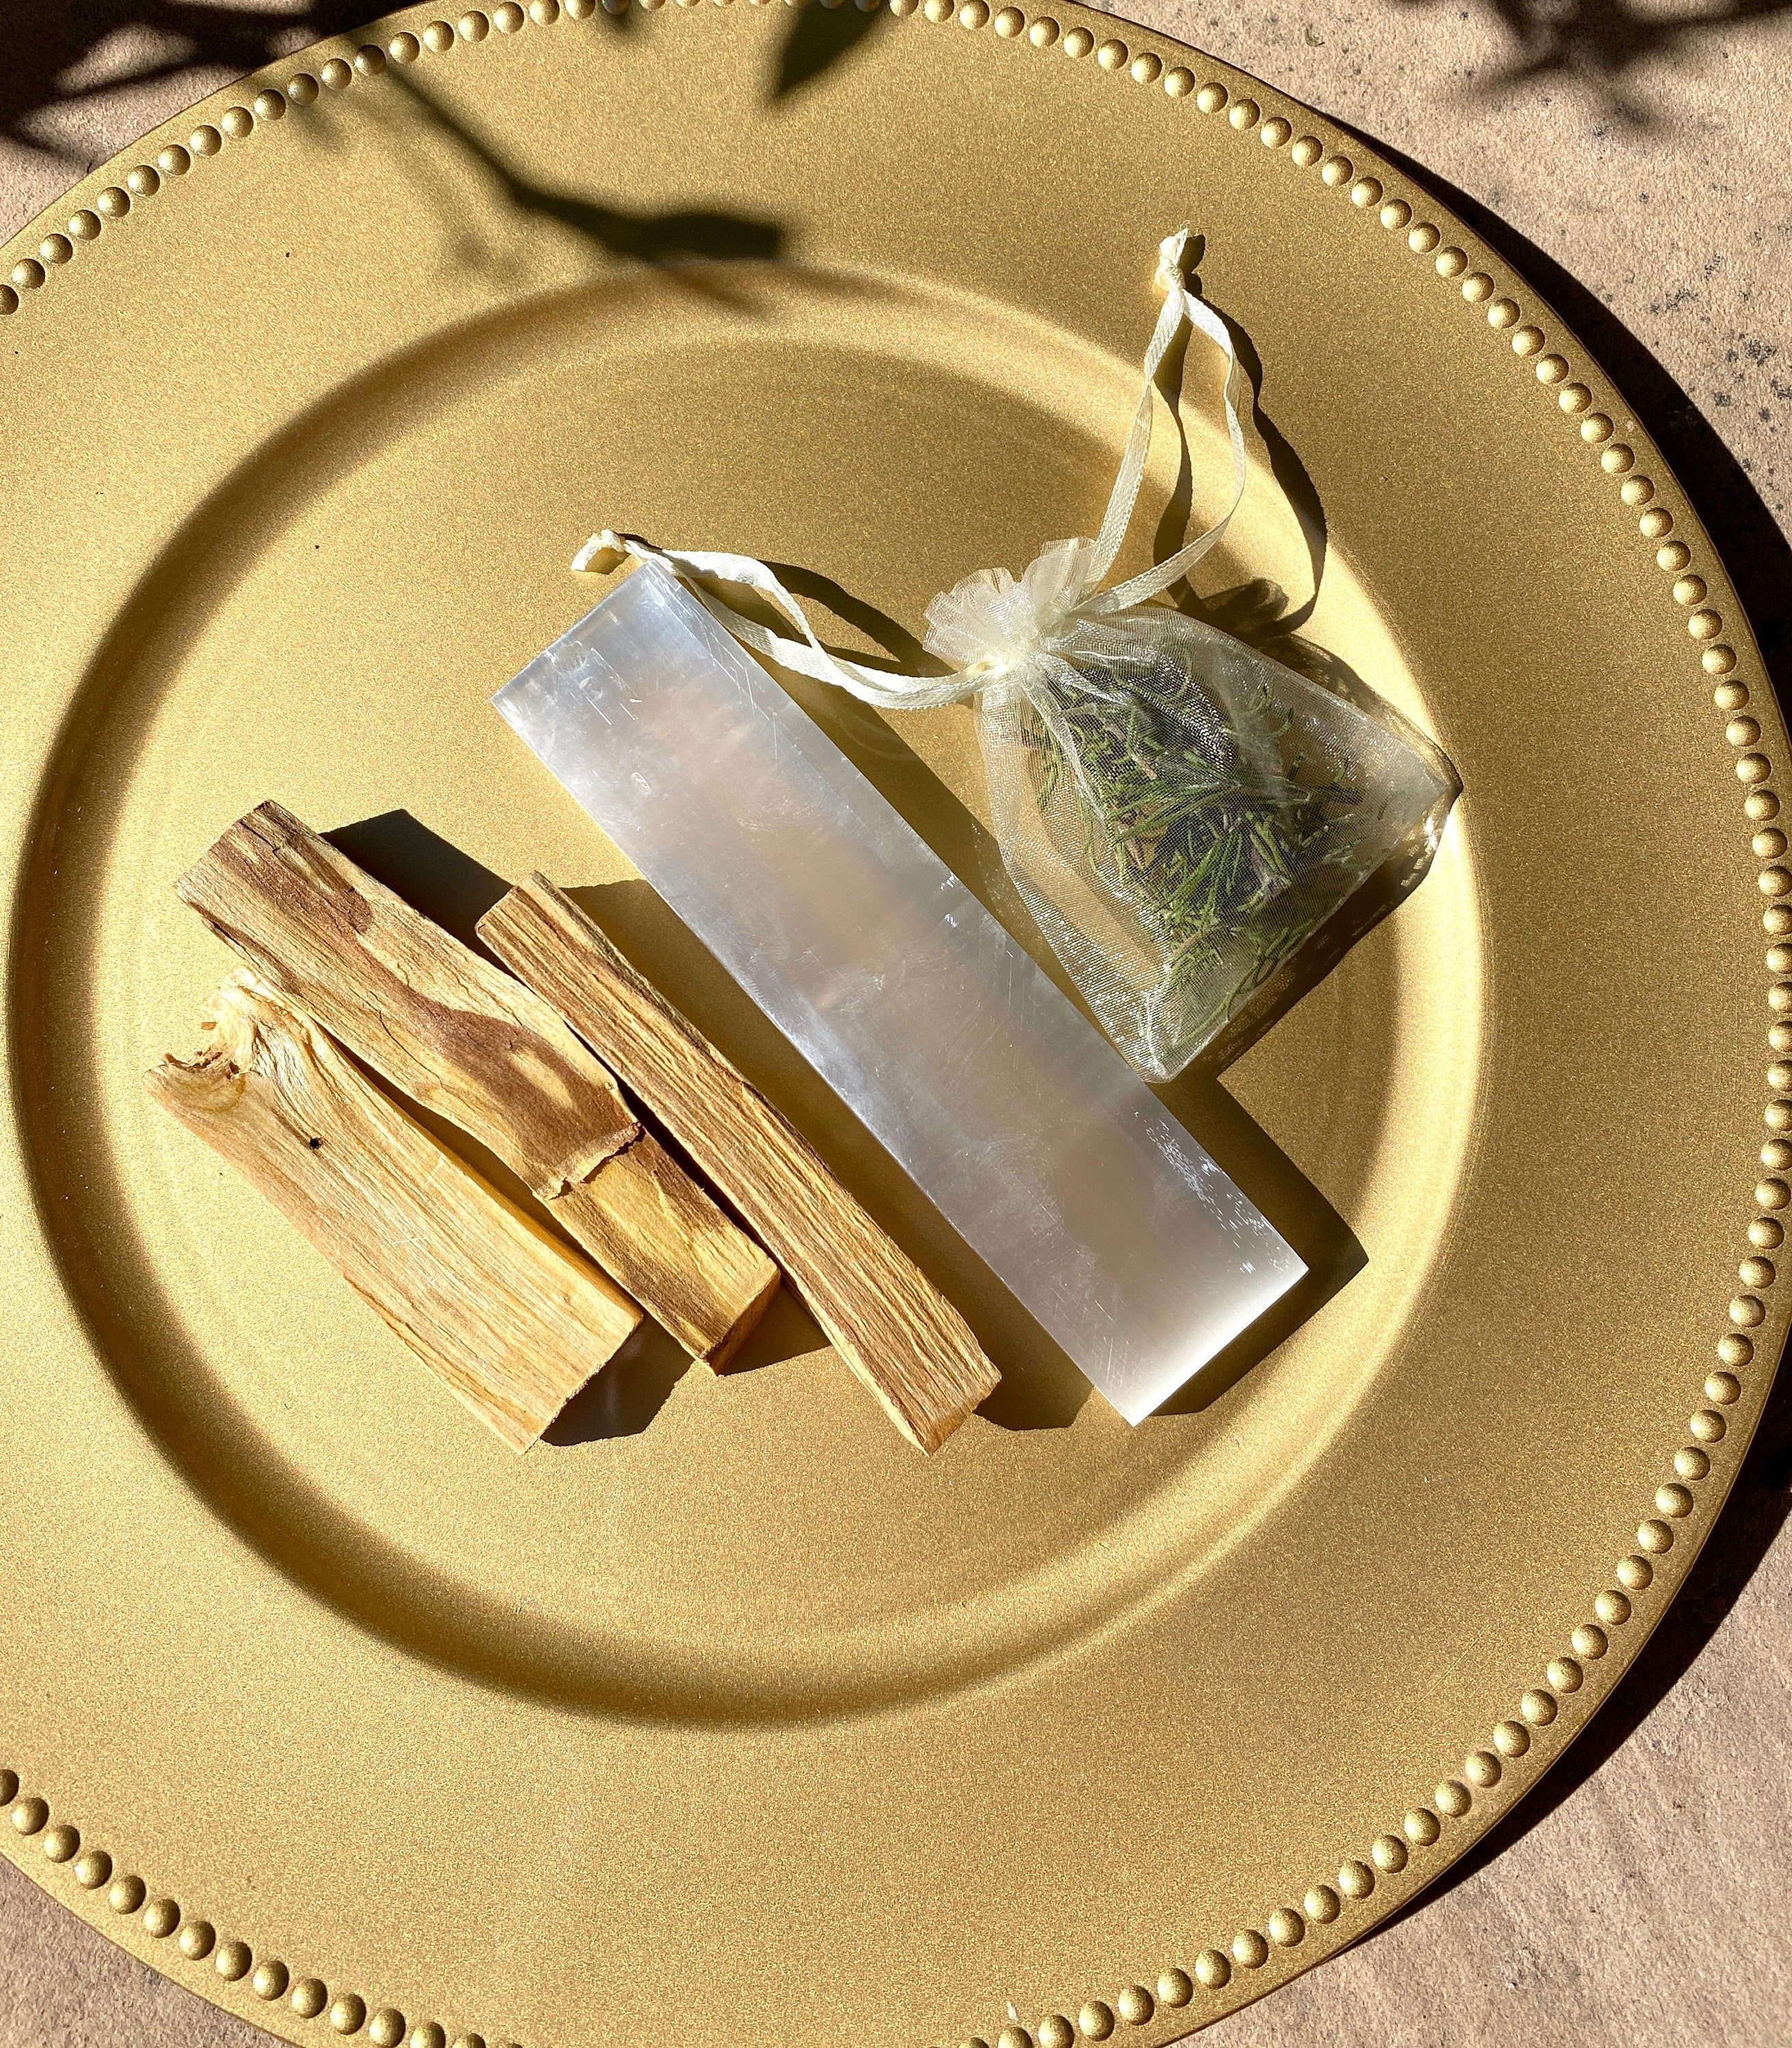 how to cleanse selenite plate